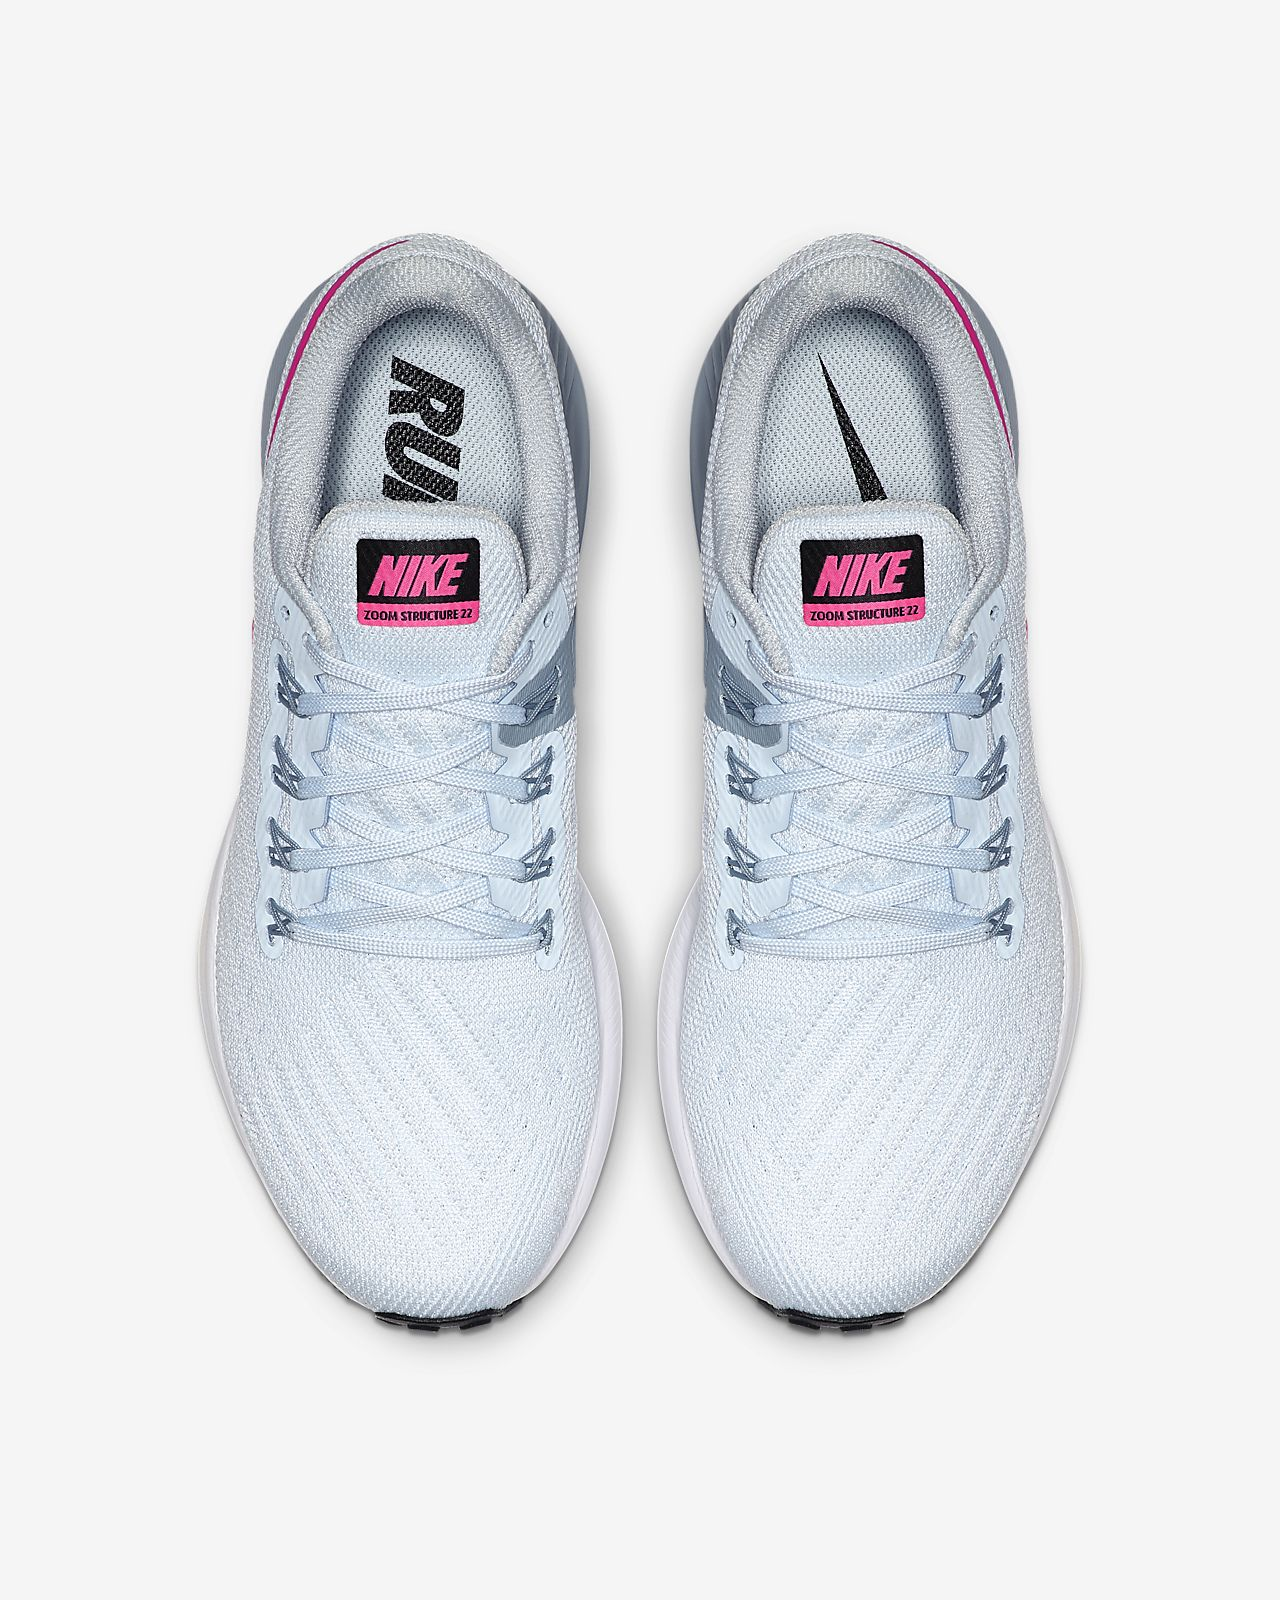 6abbd3c1aab3f Nike Air Zoom Structure 22 Women's Running Shoe. Nike.com